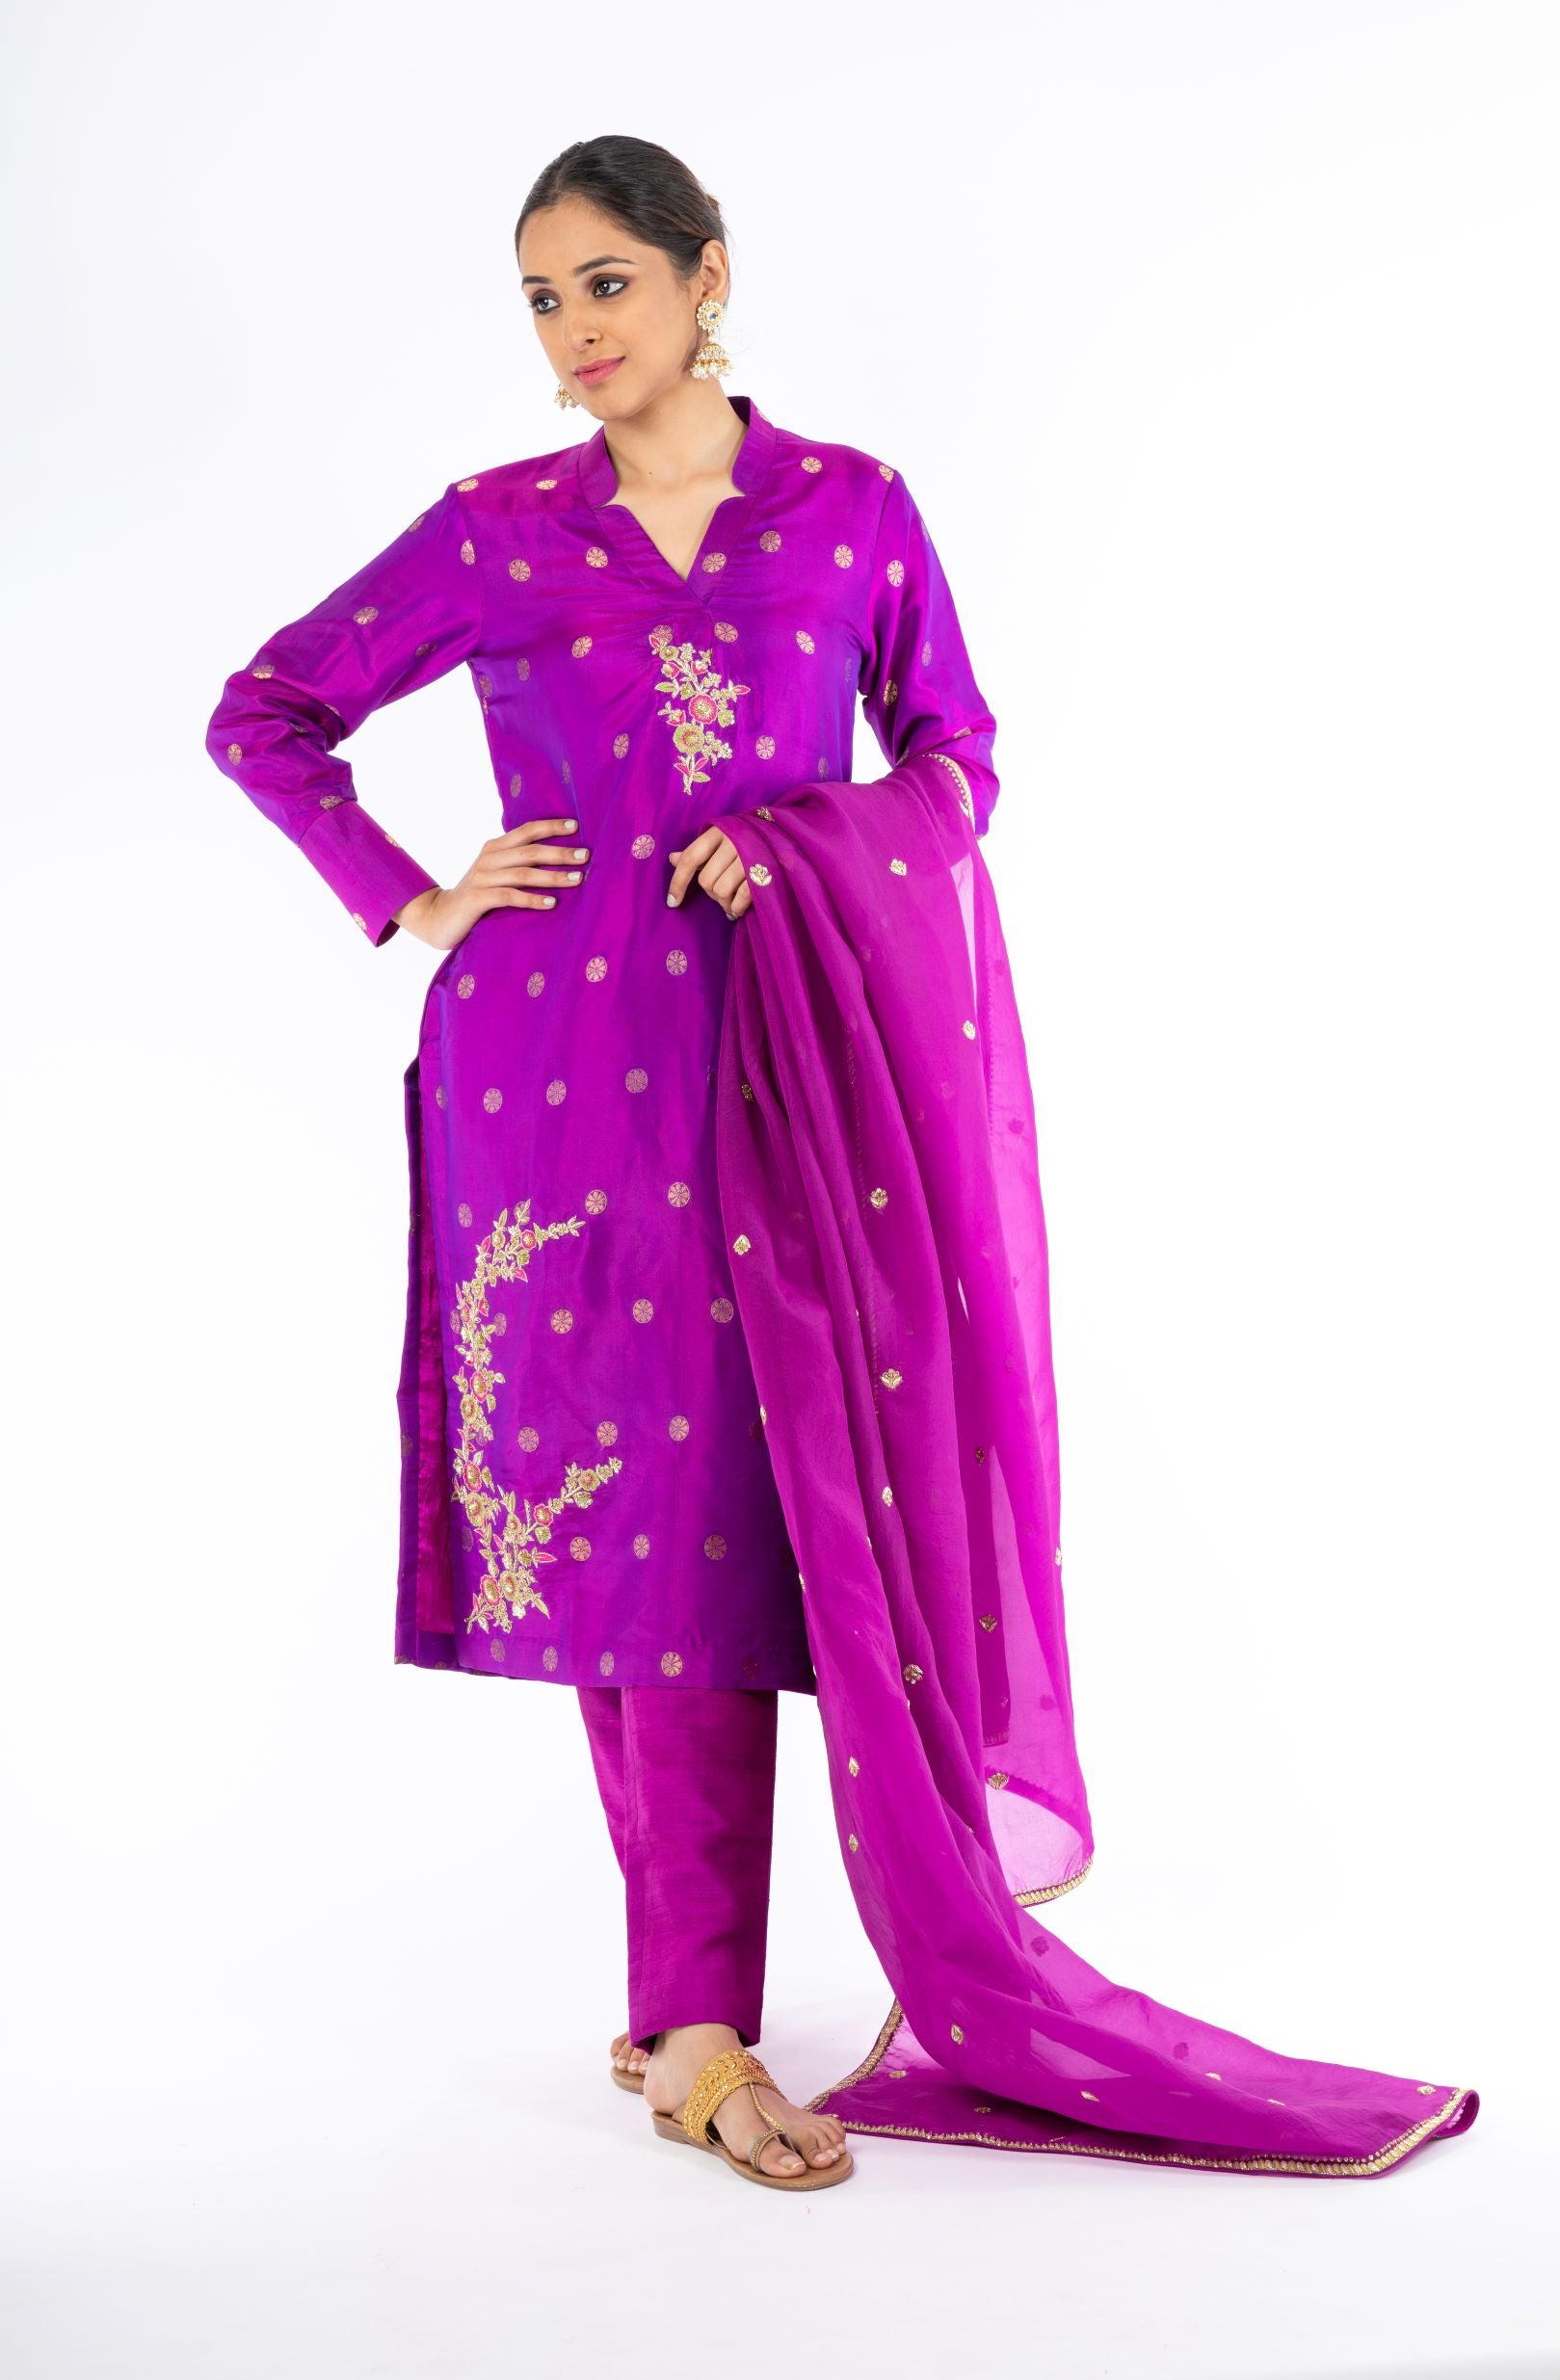 Ravishing Violet UltraMix Color Pure Handloom Silk Salwar Kameez